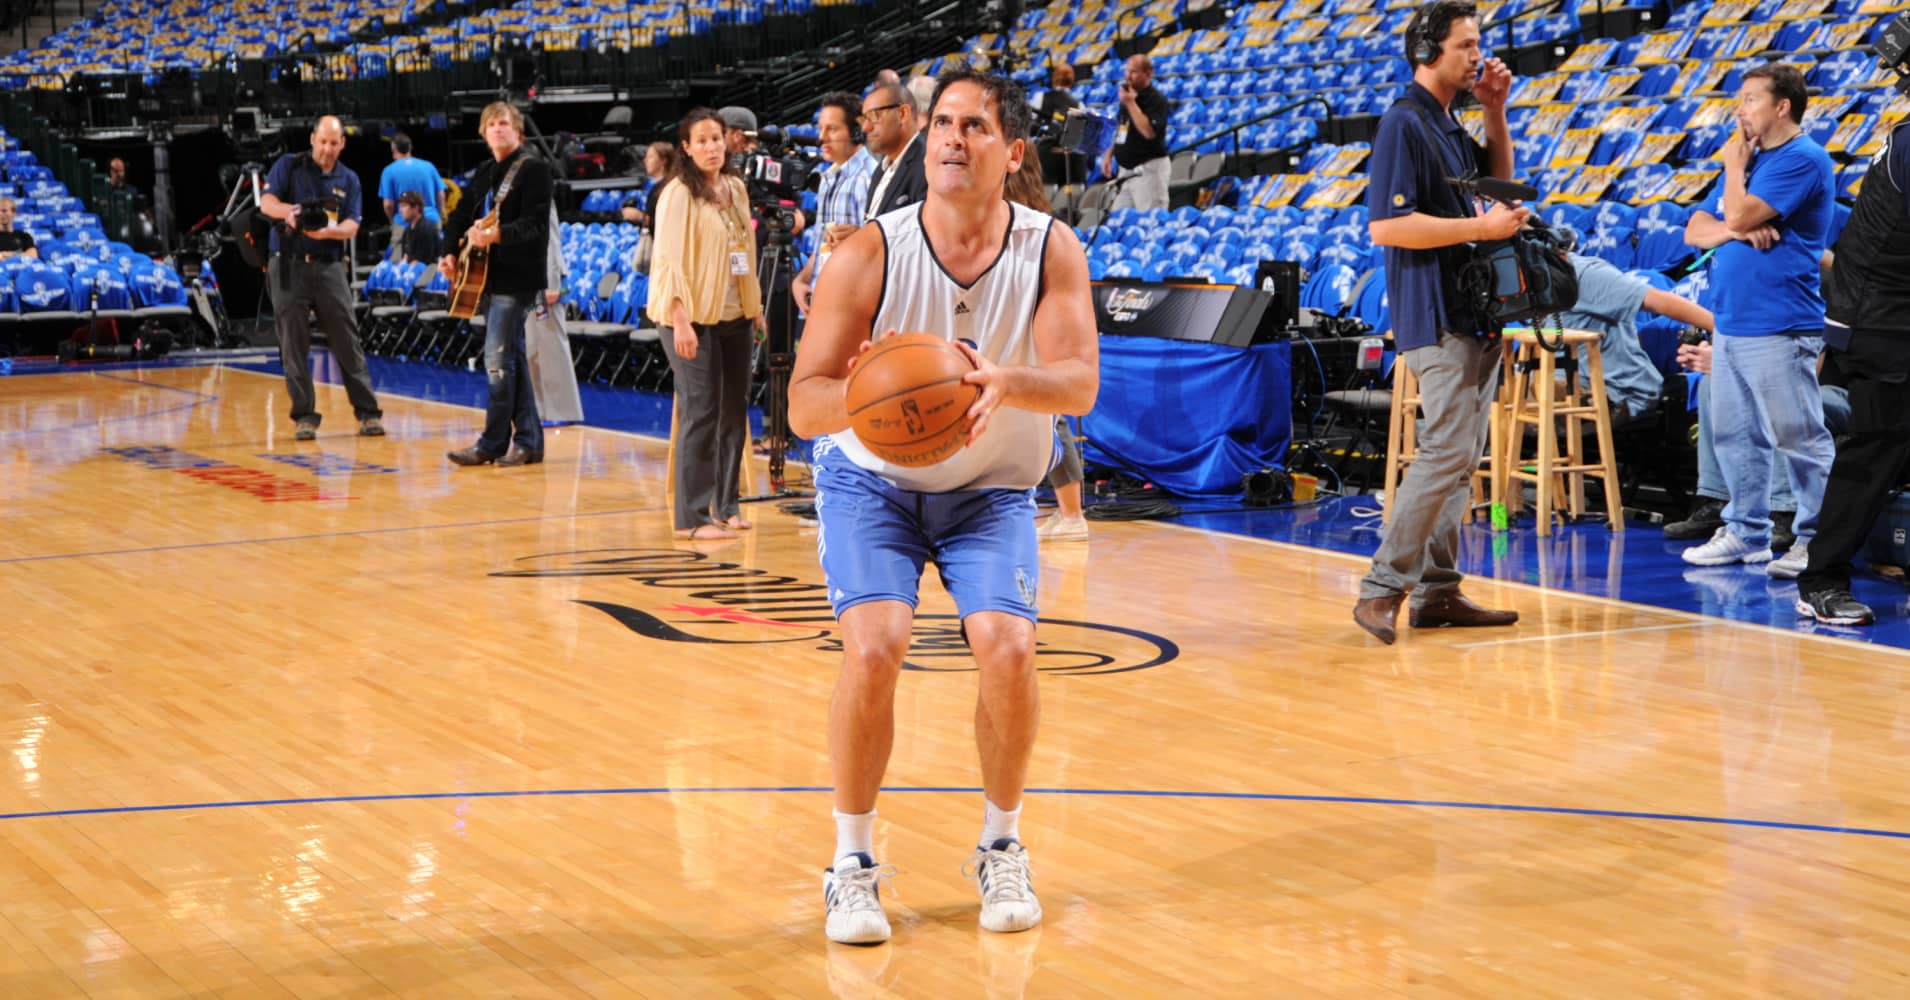 Mark Cuban, self-made billionaire and owner of the the Dallas Mavericks